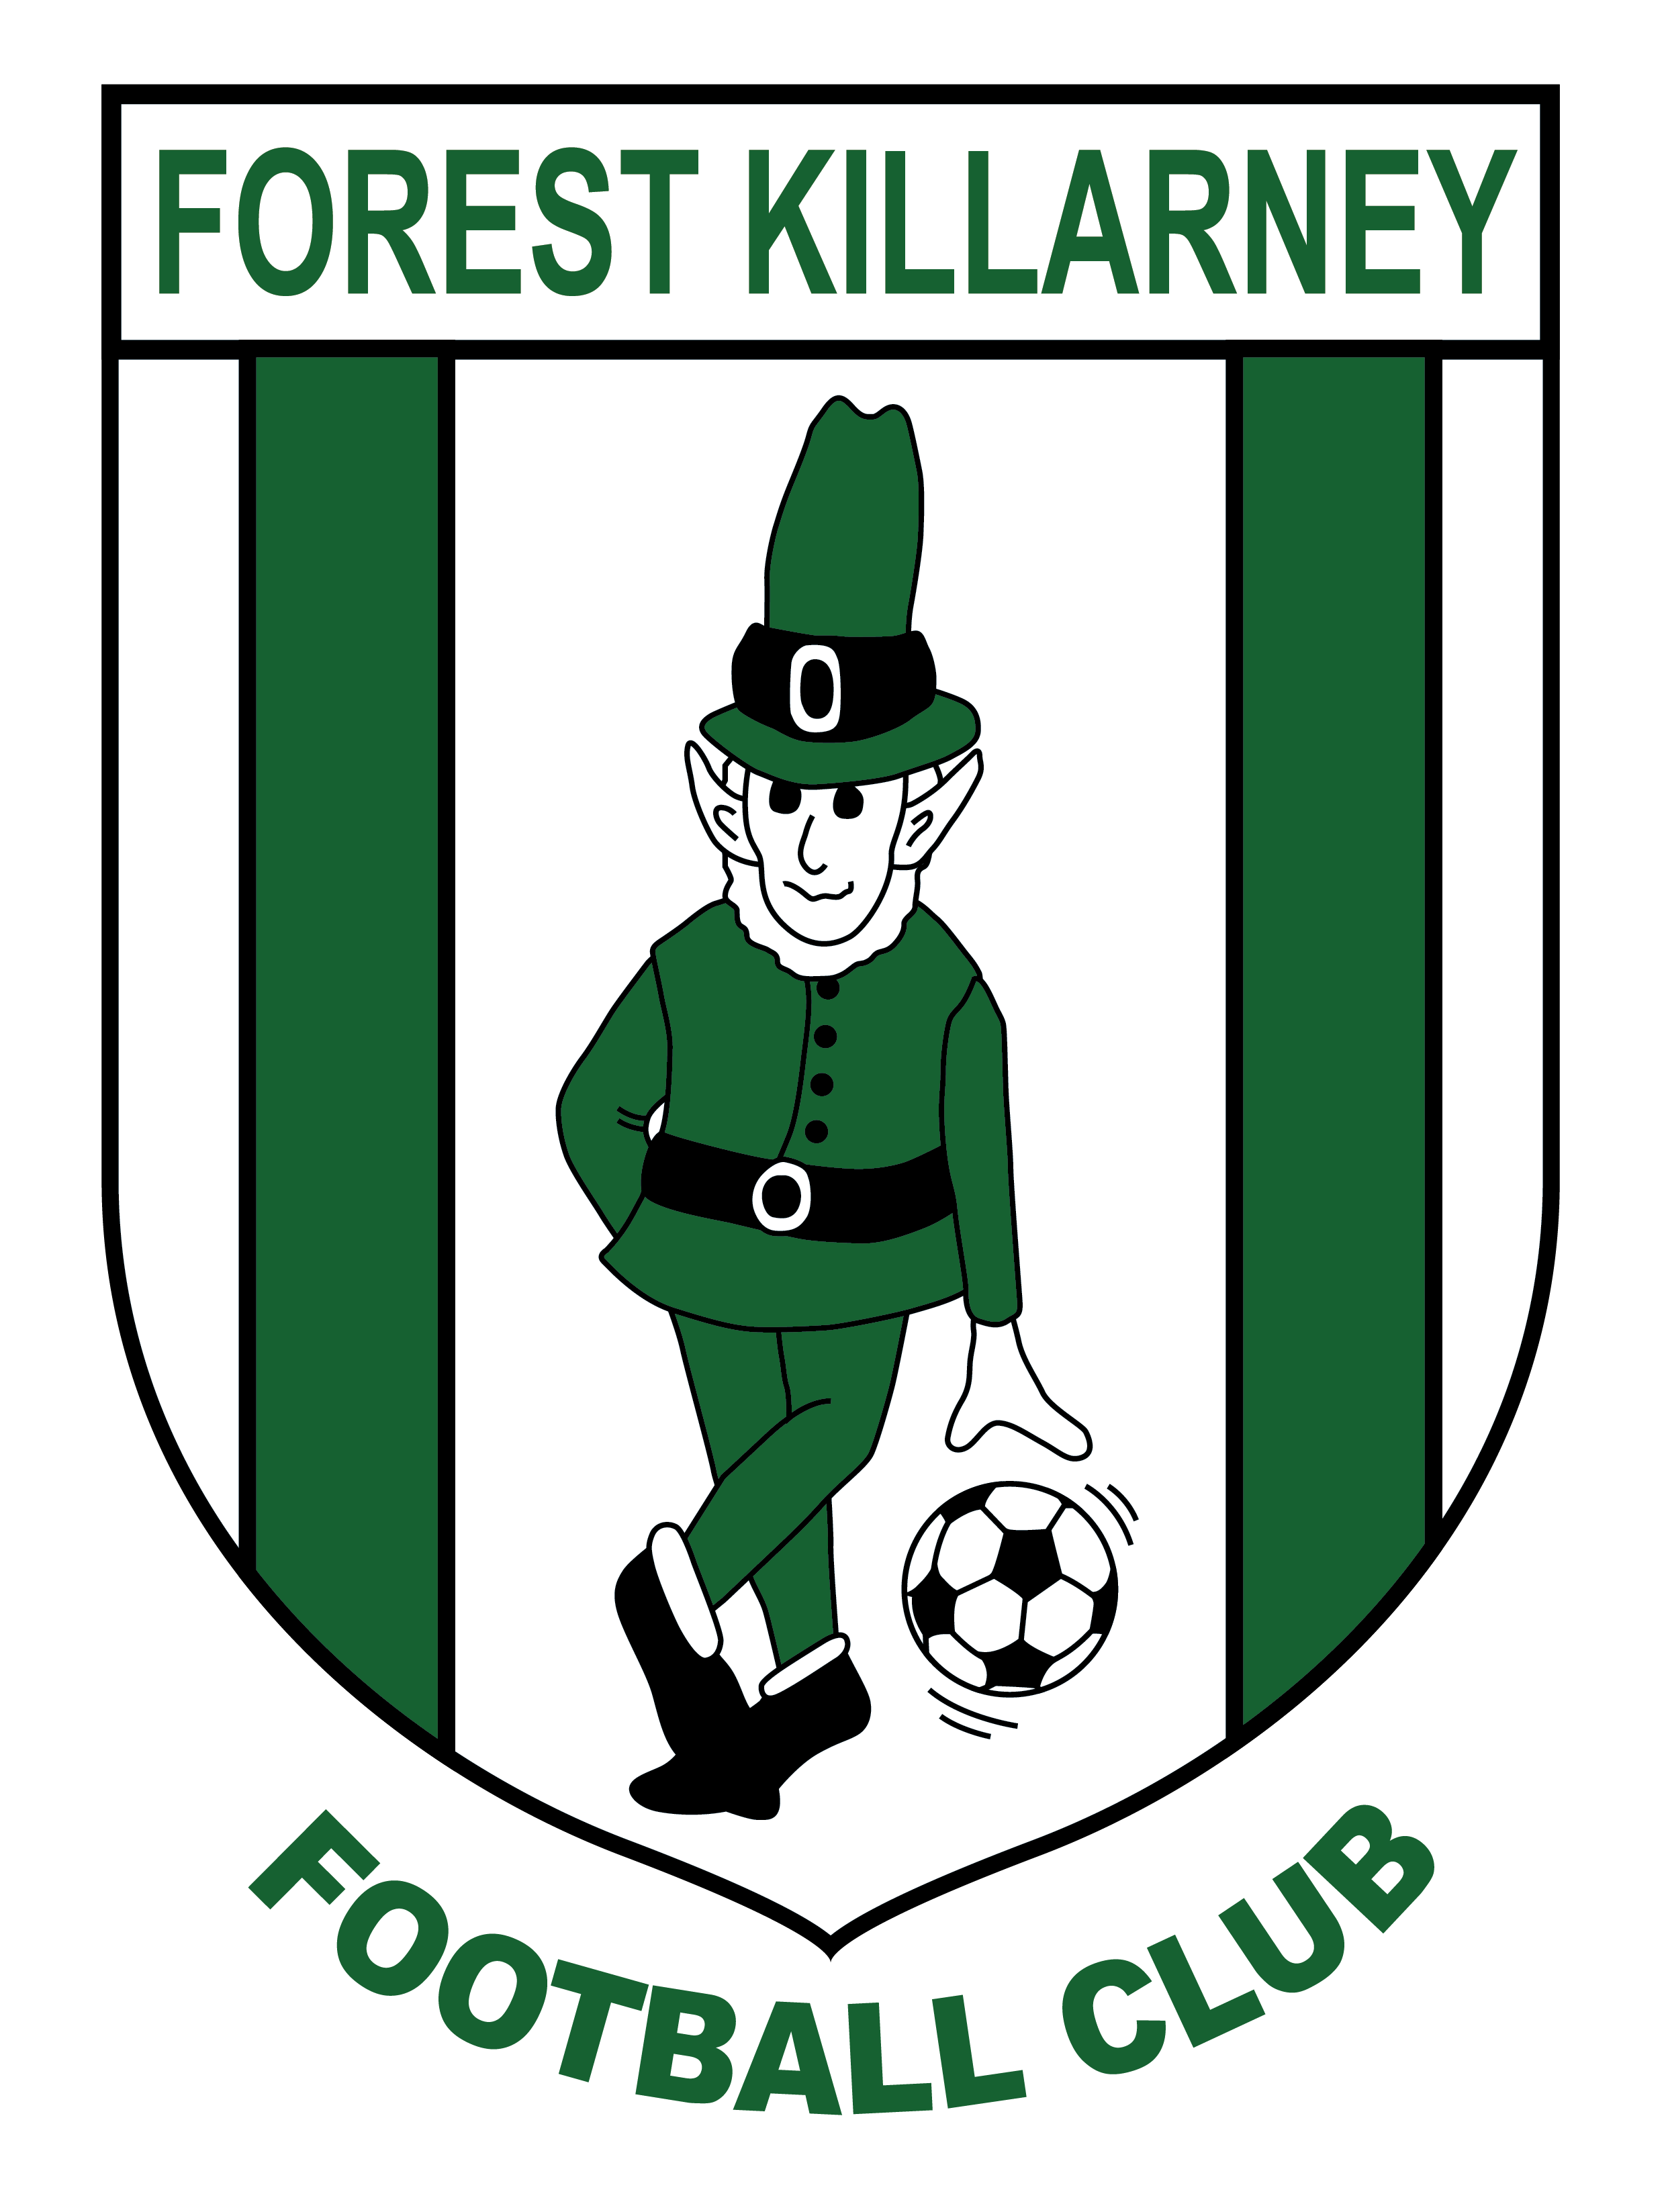 Forest Killarney Football Club